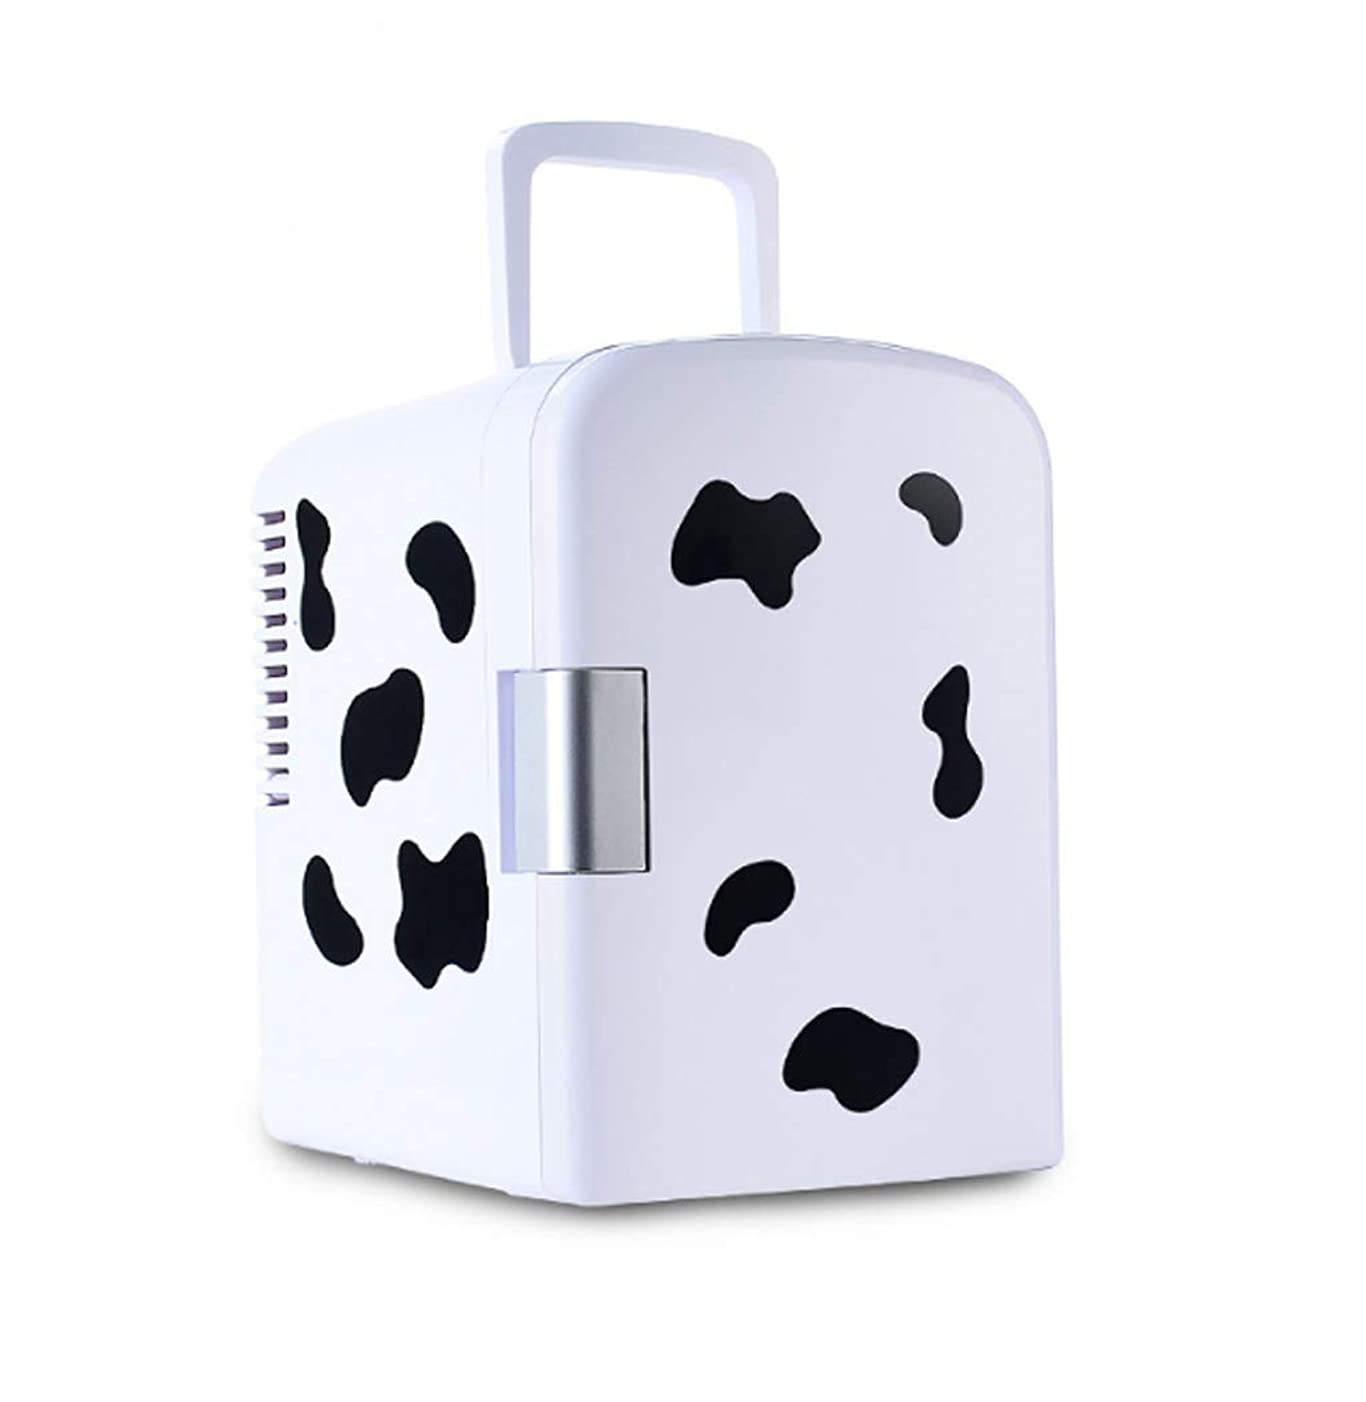 WQQ Car Refrigerator Portable Thermoelectric System Mini Fridge Suitable for Home,Office, Car, Dorm Or Boat AC & DC Power Cords